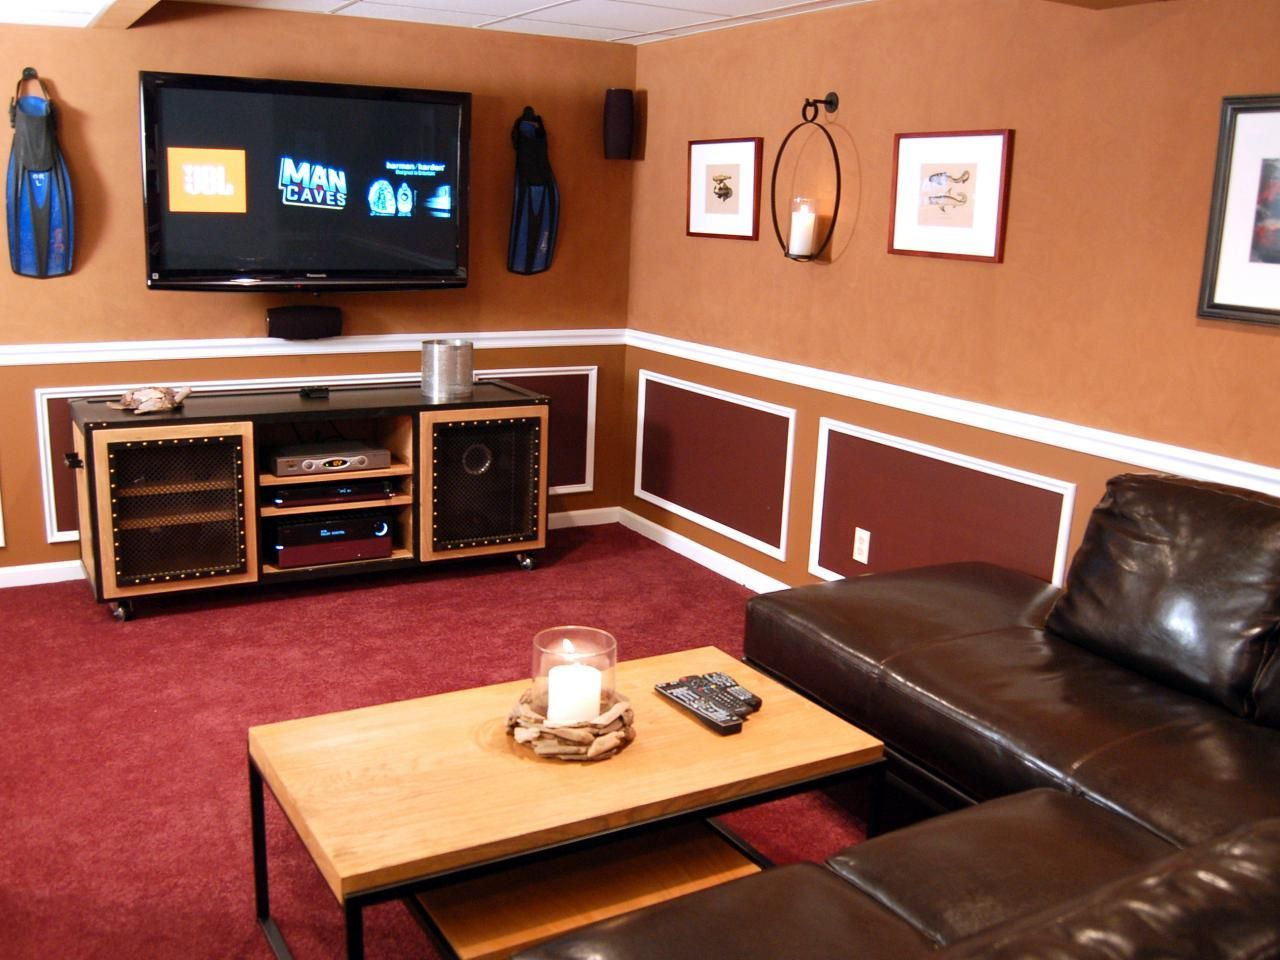 Chillaxation Man Caves Man Caves Diy Man Cave Room Small